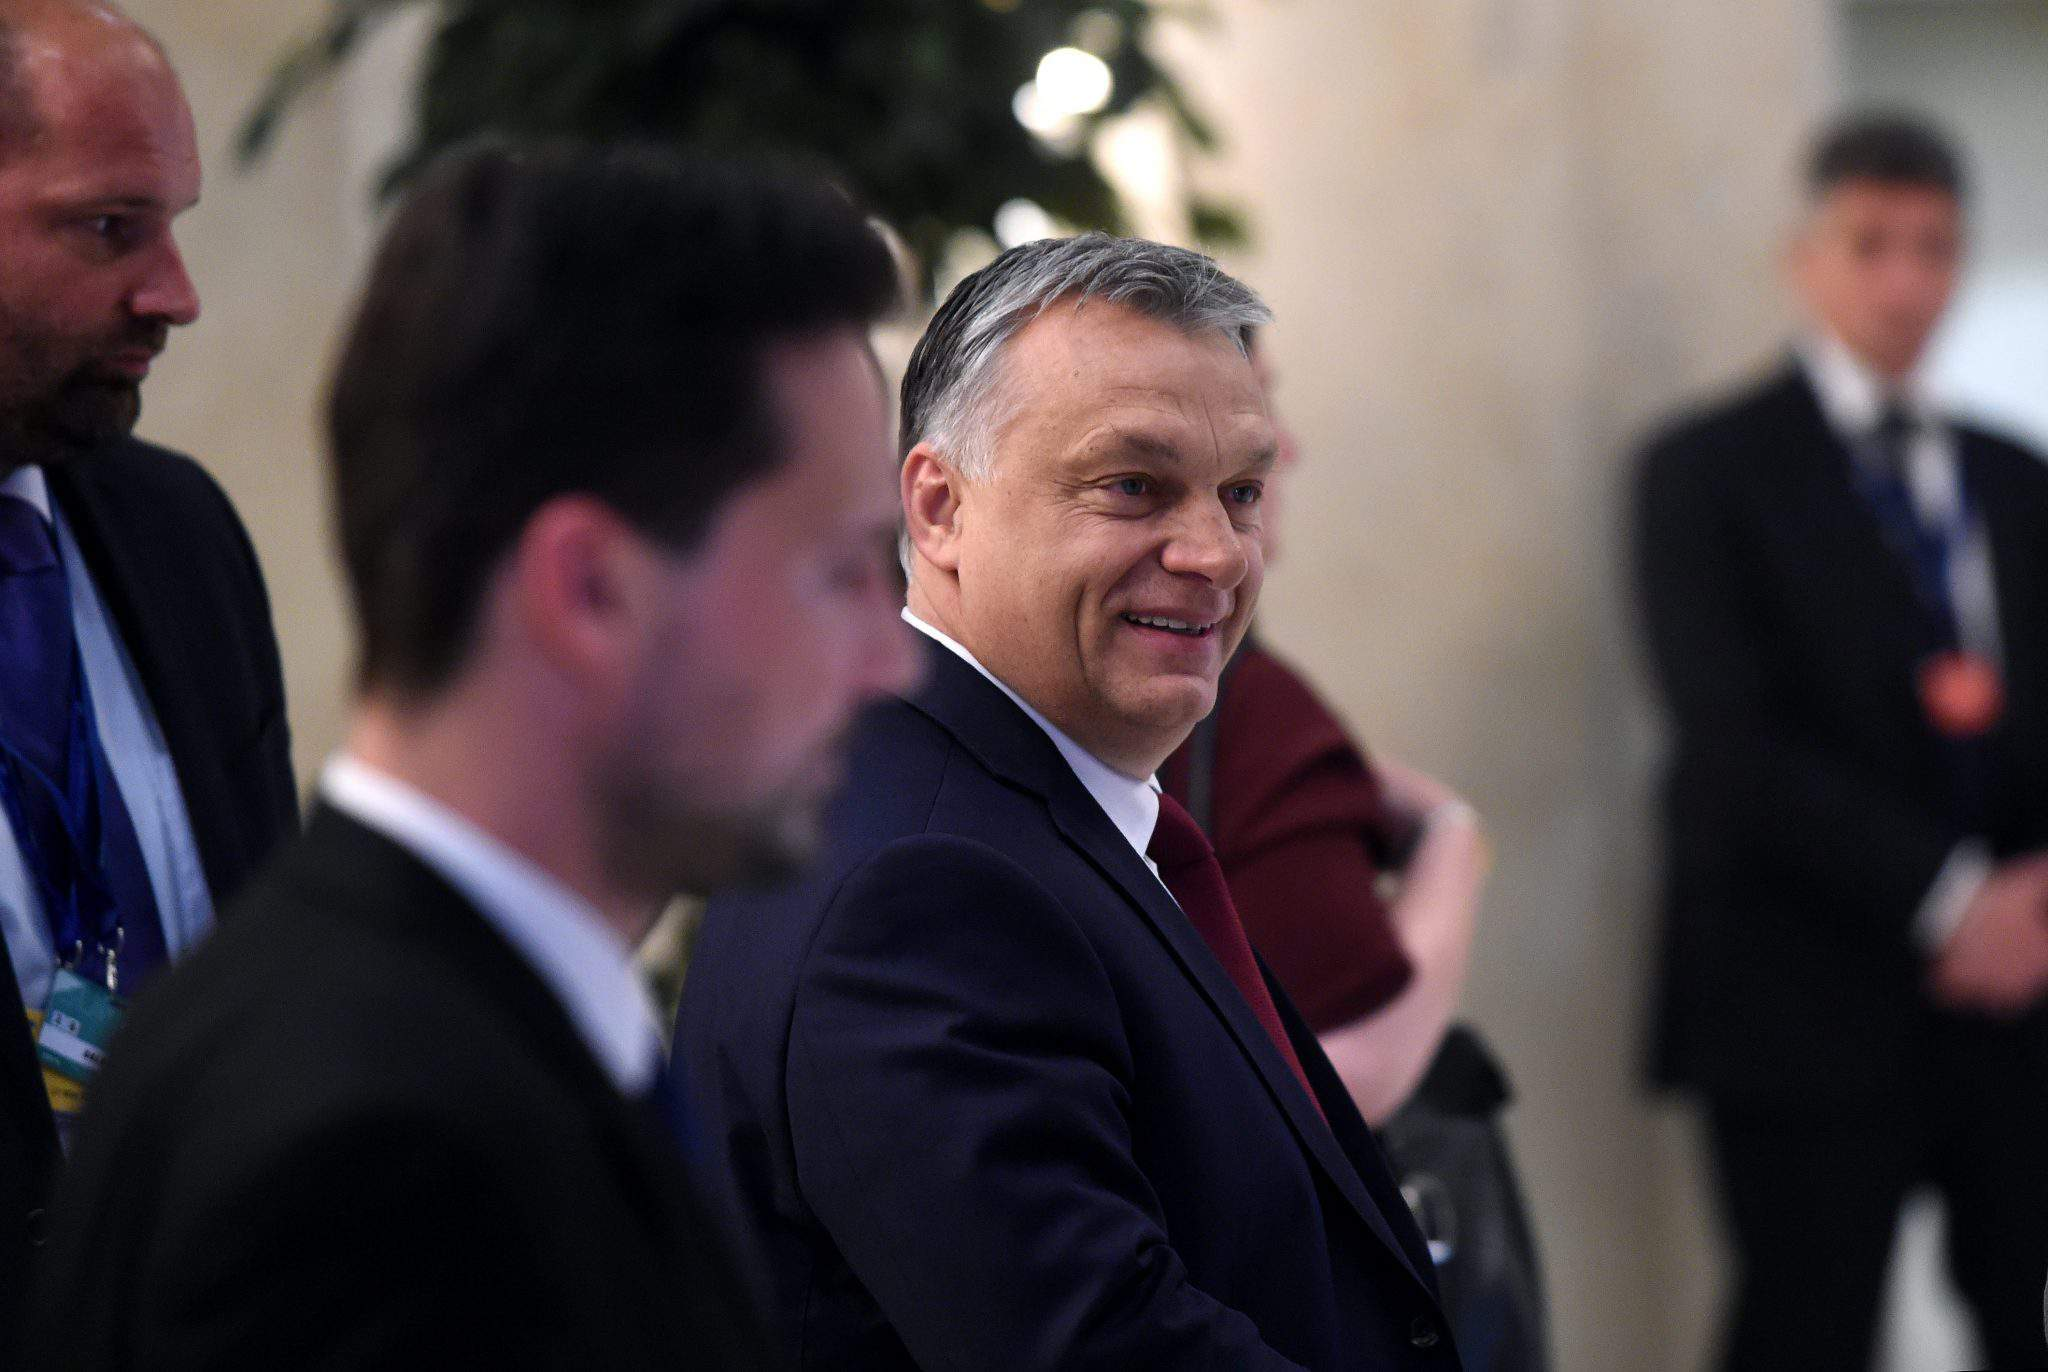 Viktor Orbán European People's Party